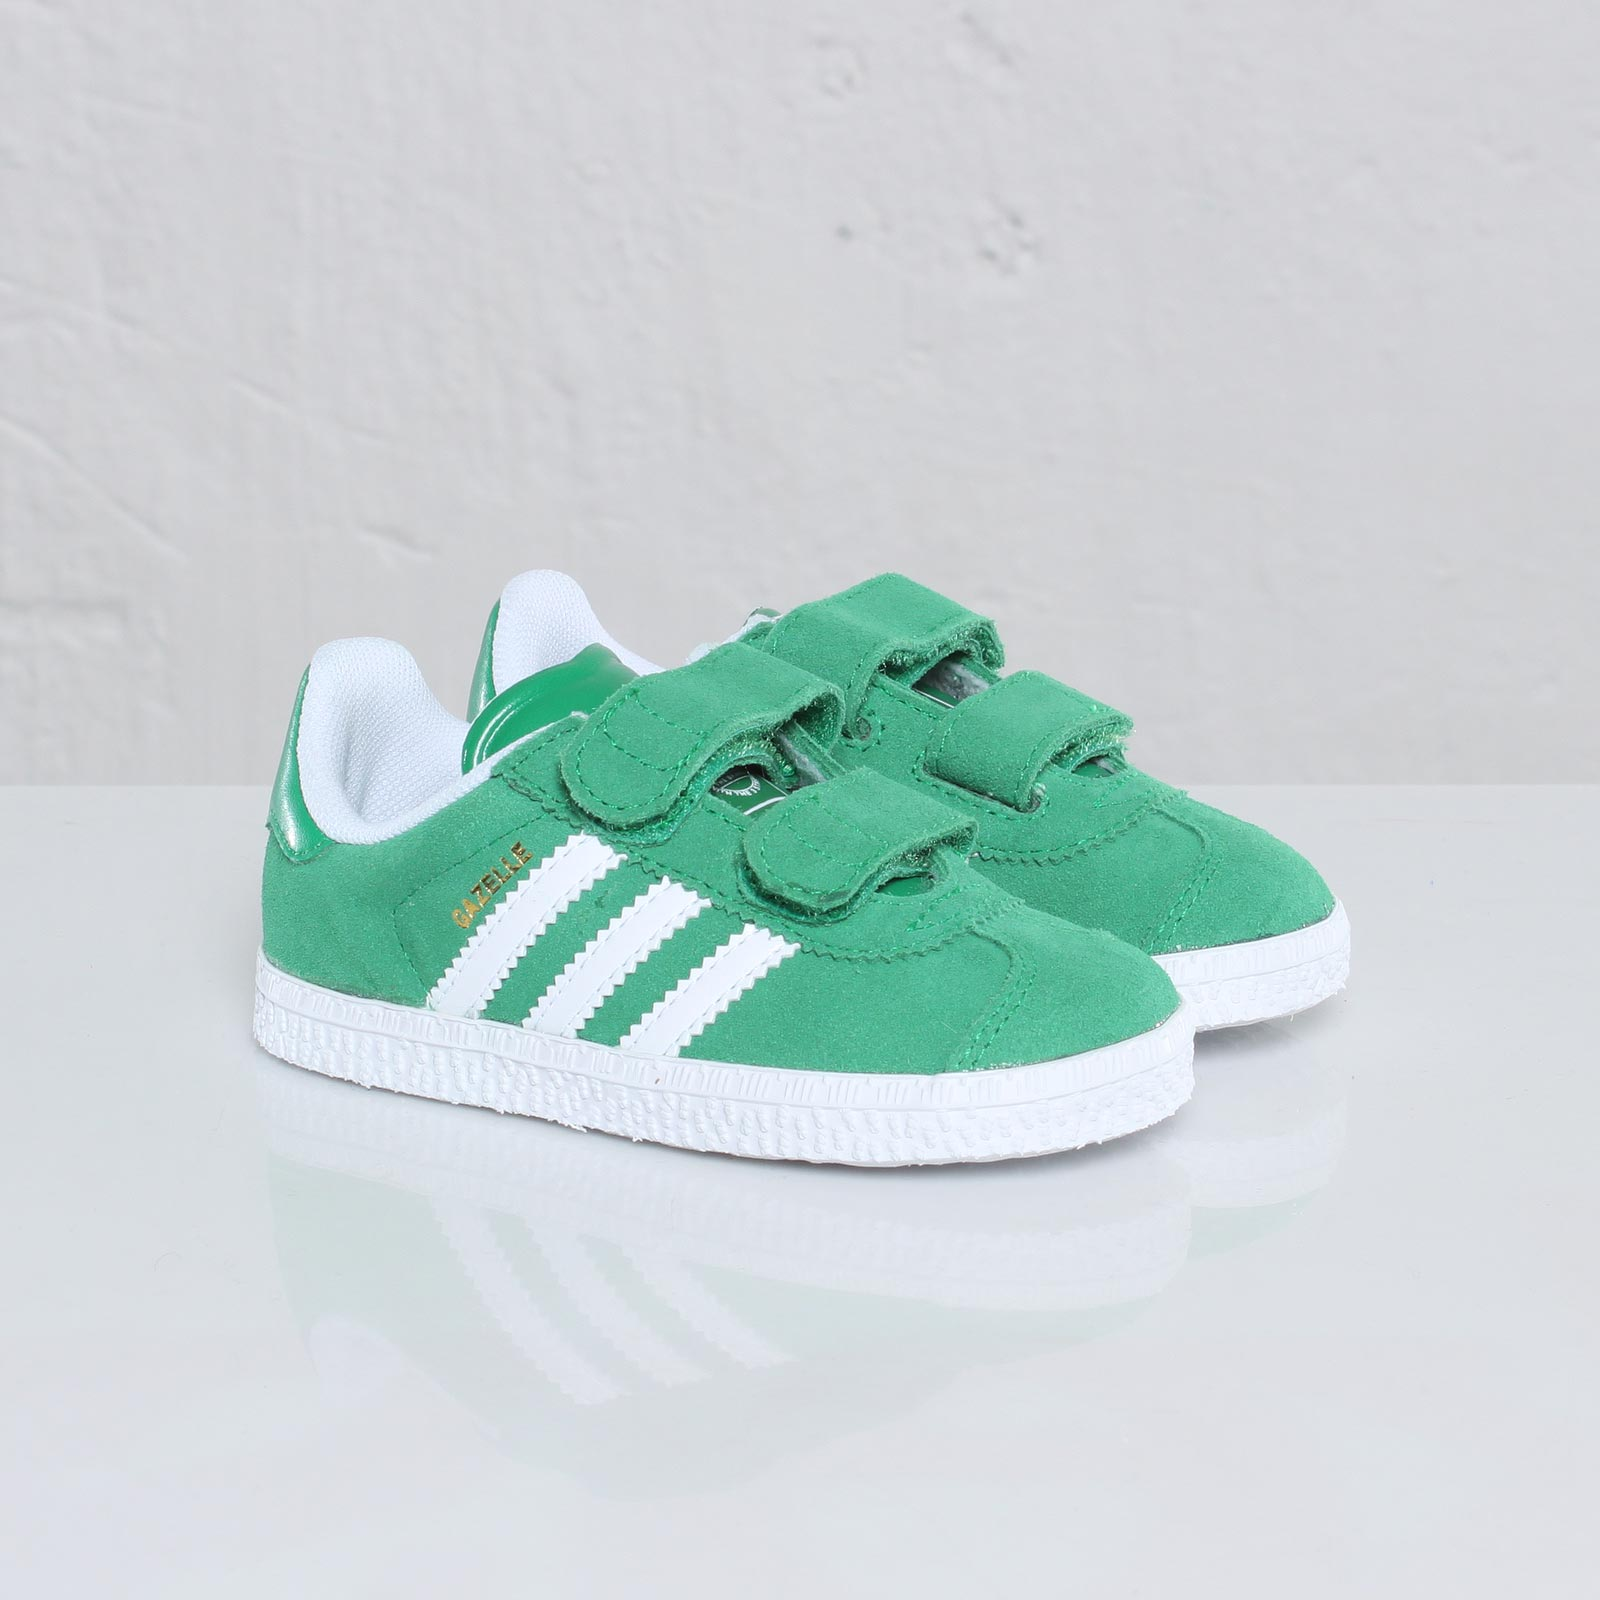 adidas Gazelle 2 CF Infant - 109303 - Sneakersnstuff  3ea2b55c8